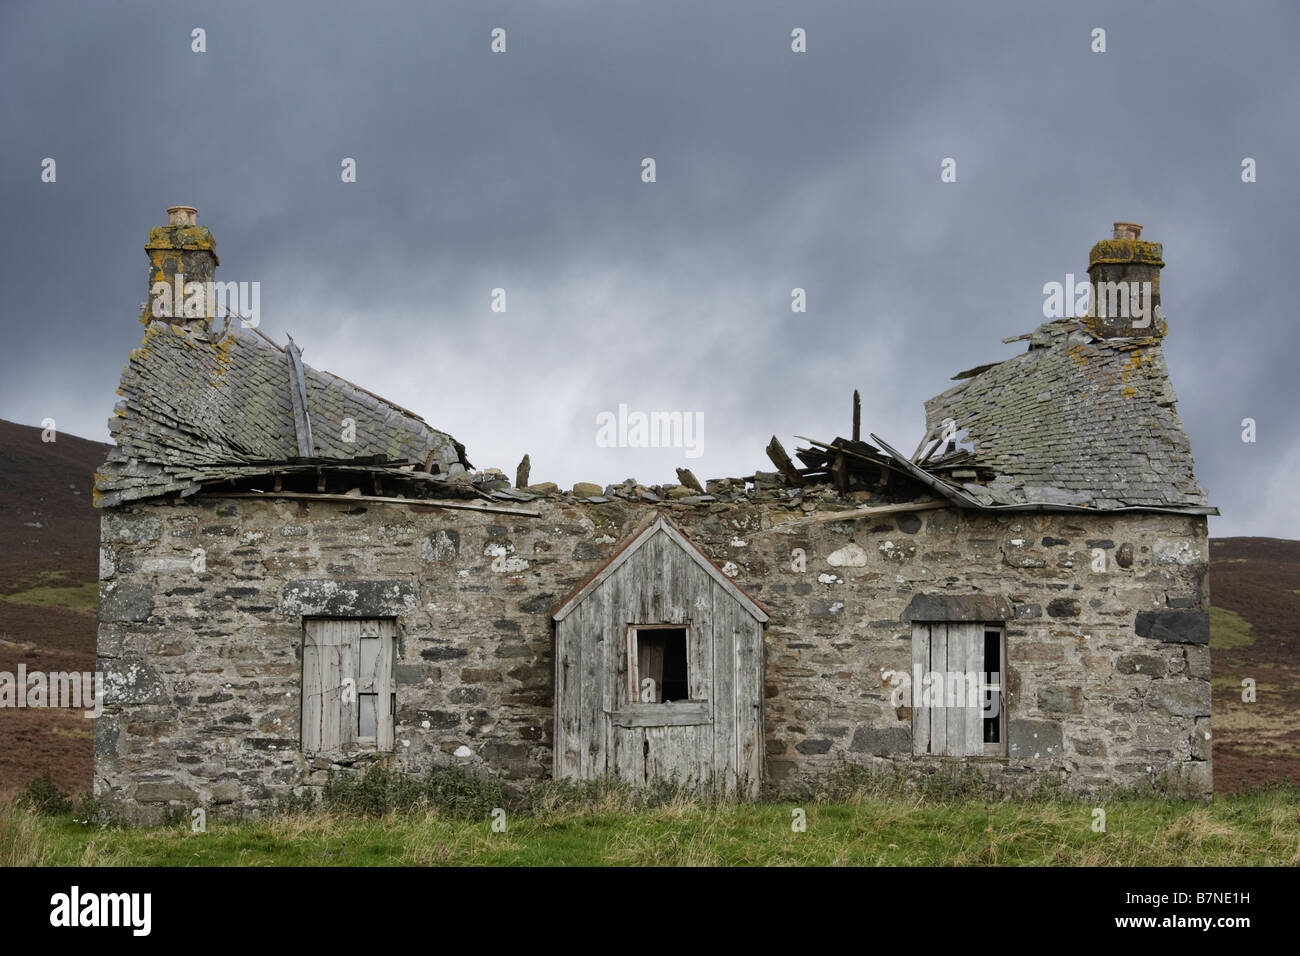 Delapidated house against grey sky Perthshire Scotland - Stock Image